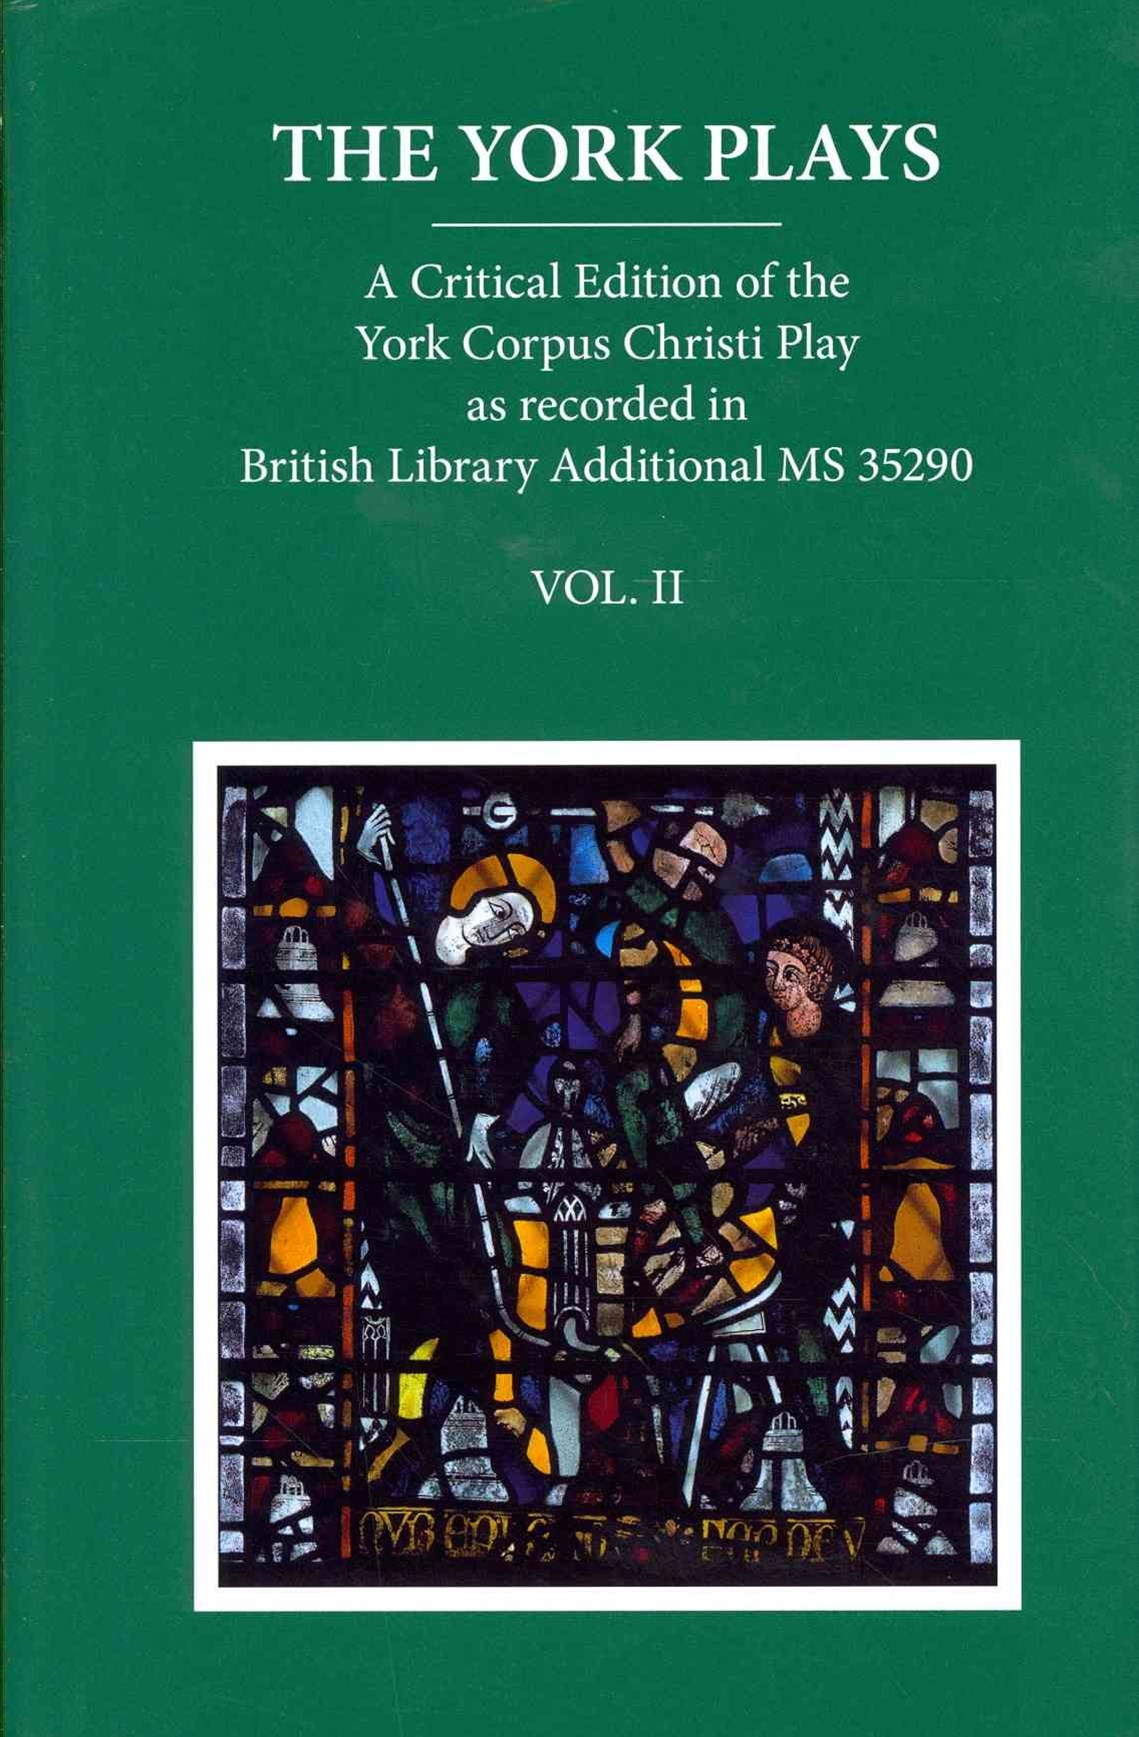 The York Plays: A Critical Edition of the York Corpus Christi Play